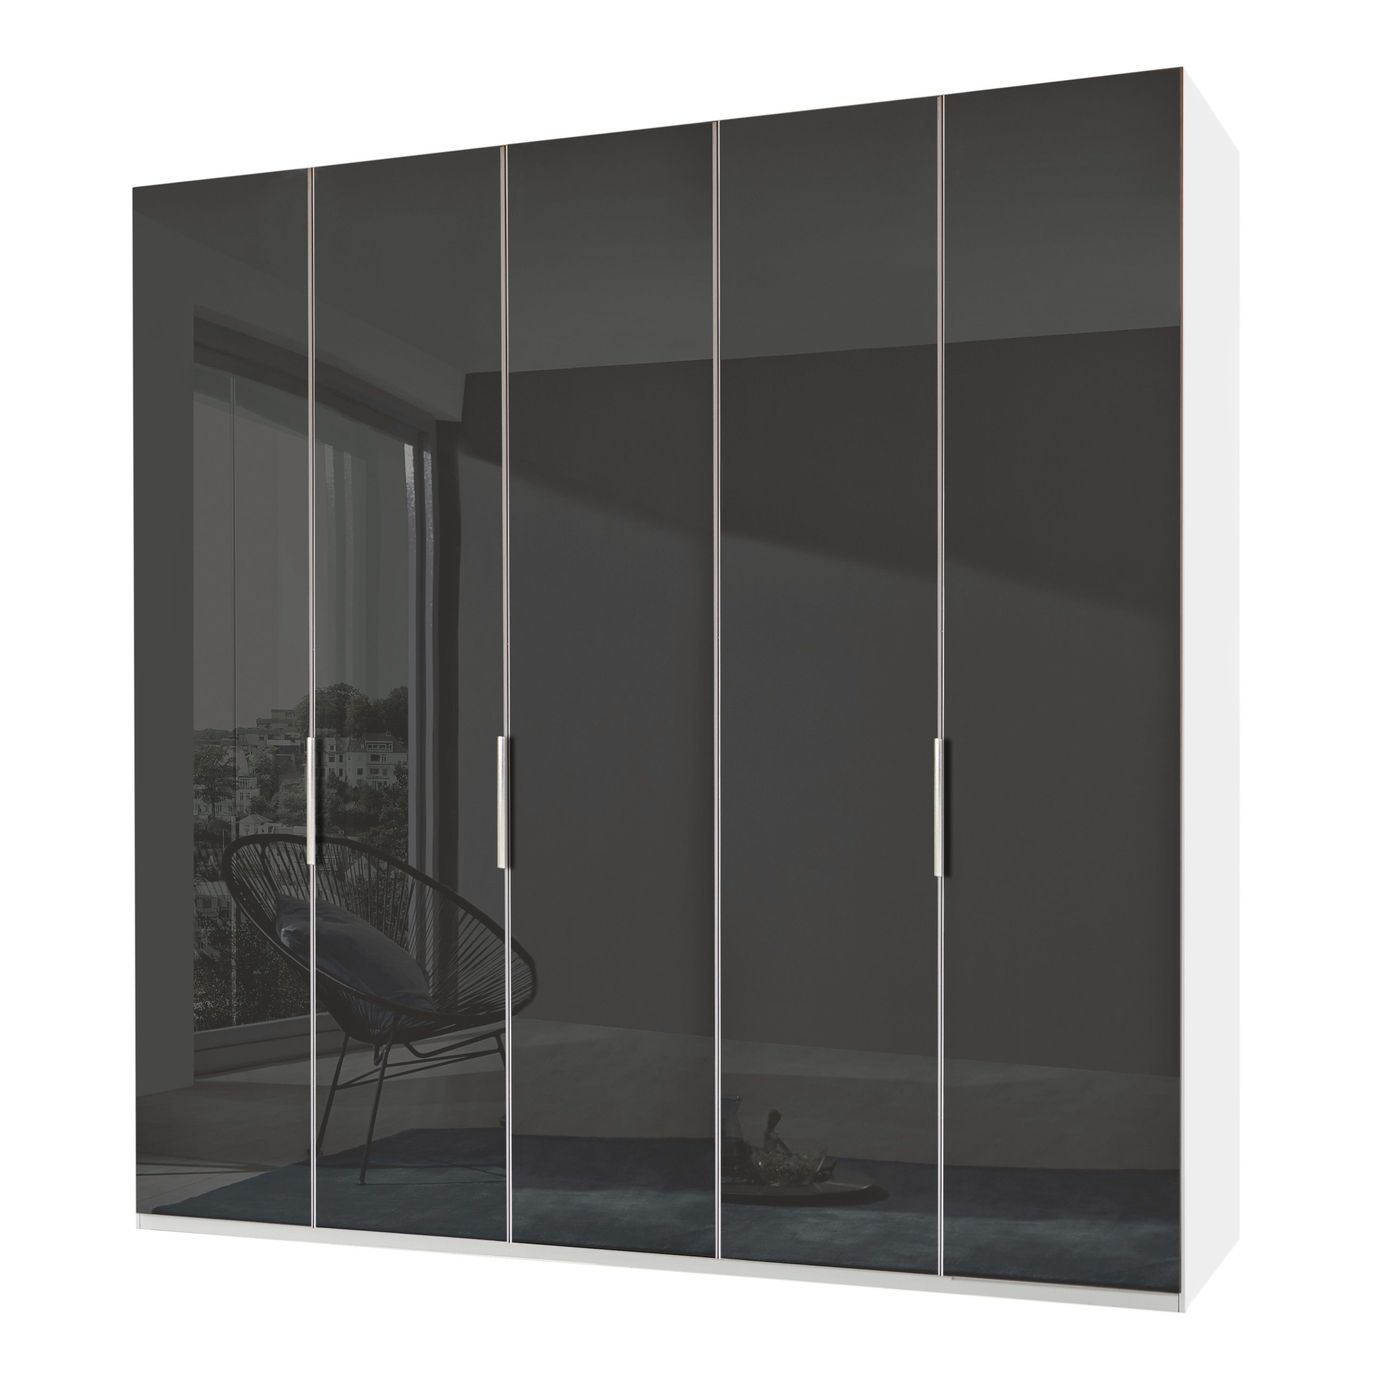 kleiderschrank mit glasfront in grau 2 bis 6 t ren tramonti. Black Bedroom Furniture Sets. Home Design Ideas